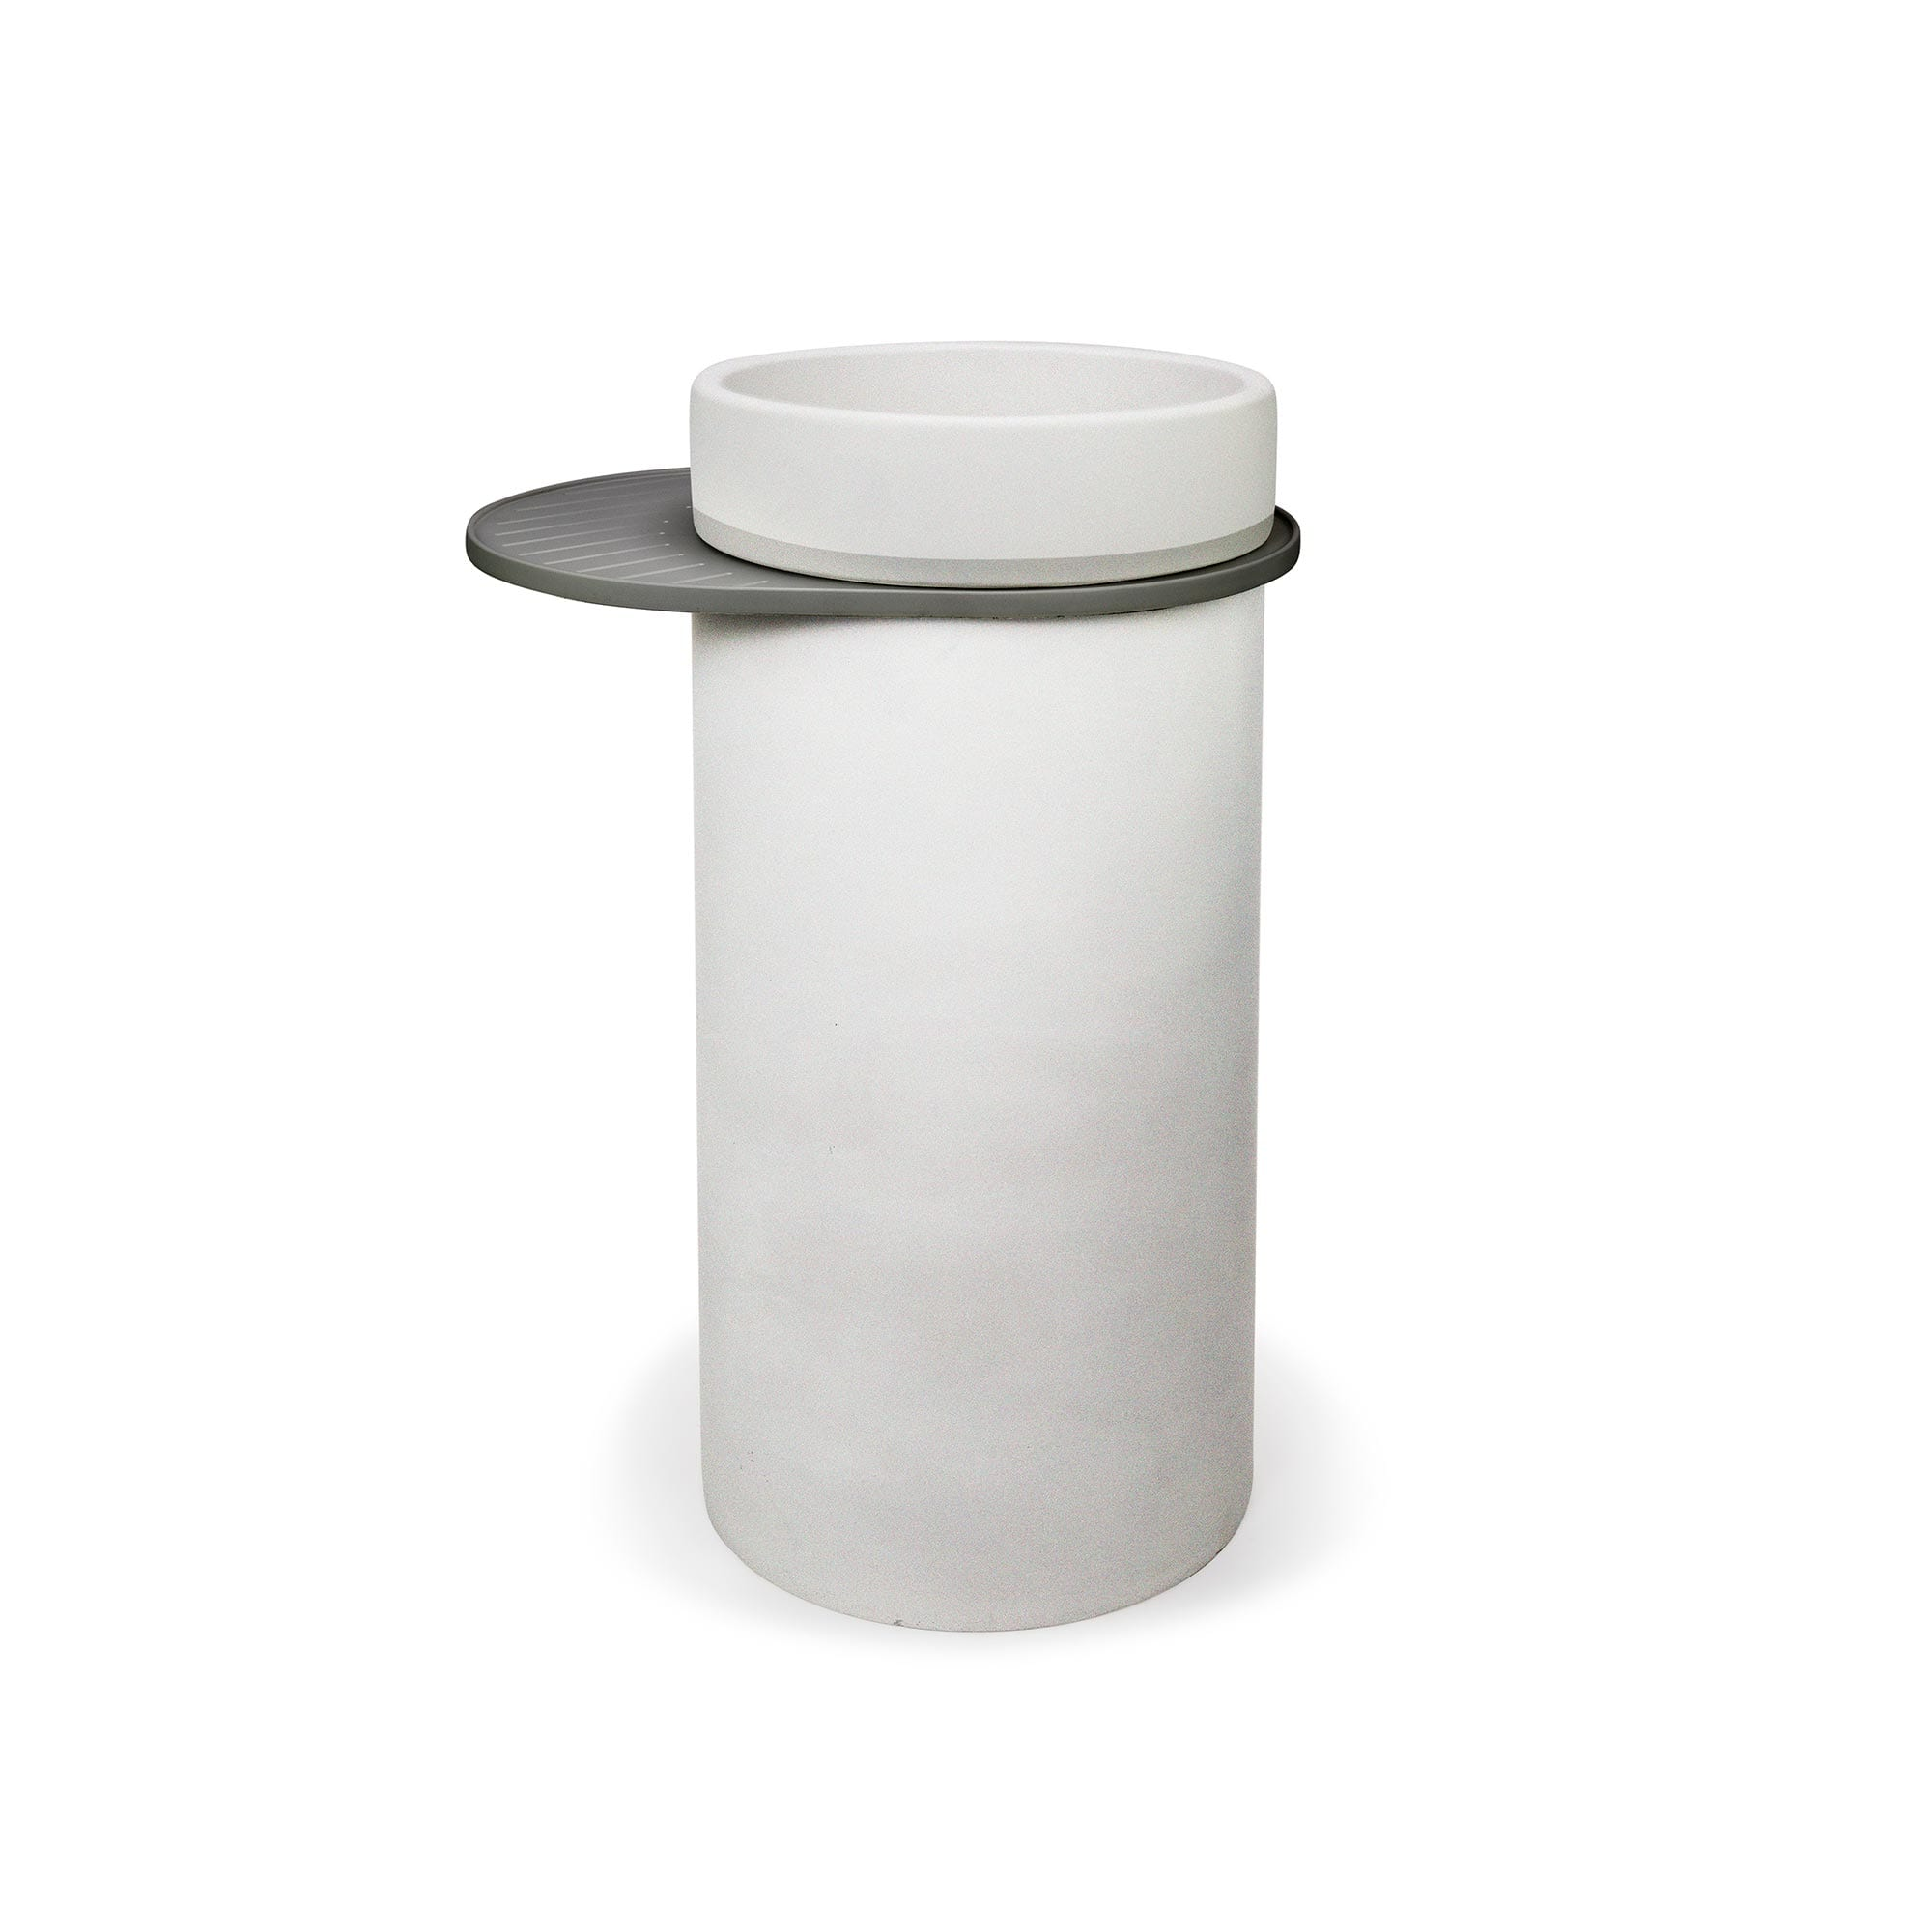 Bowl Two Tone Basin Cylinder 3